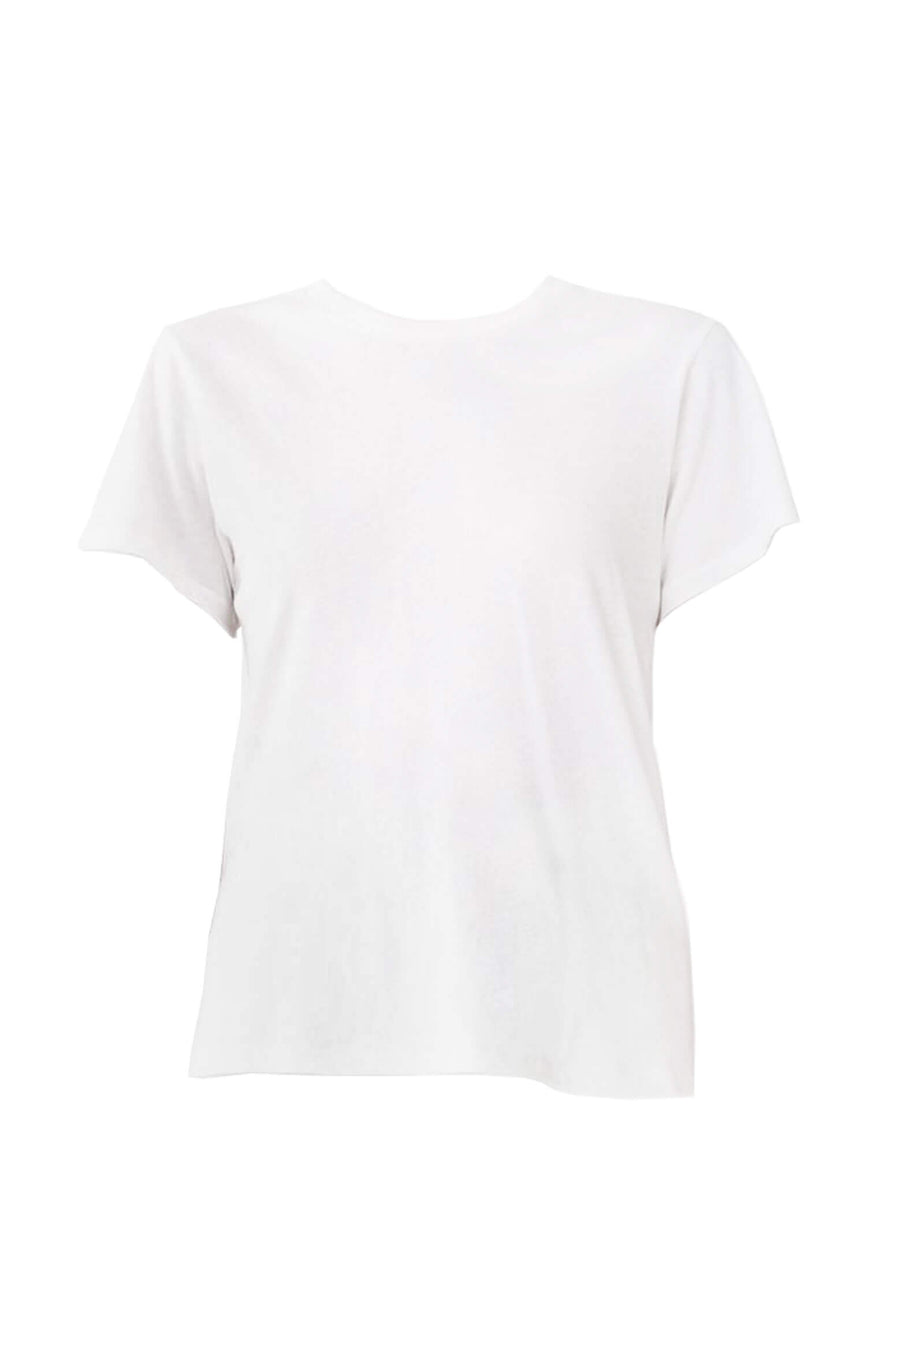 Agolde Mariam Tee in white from The New Trend online